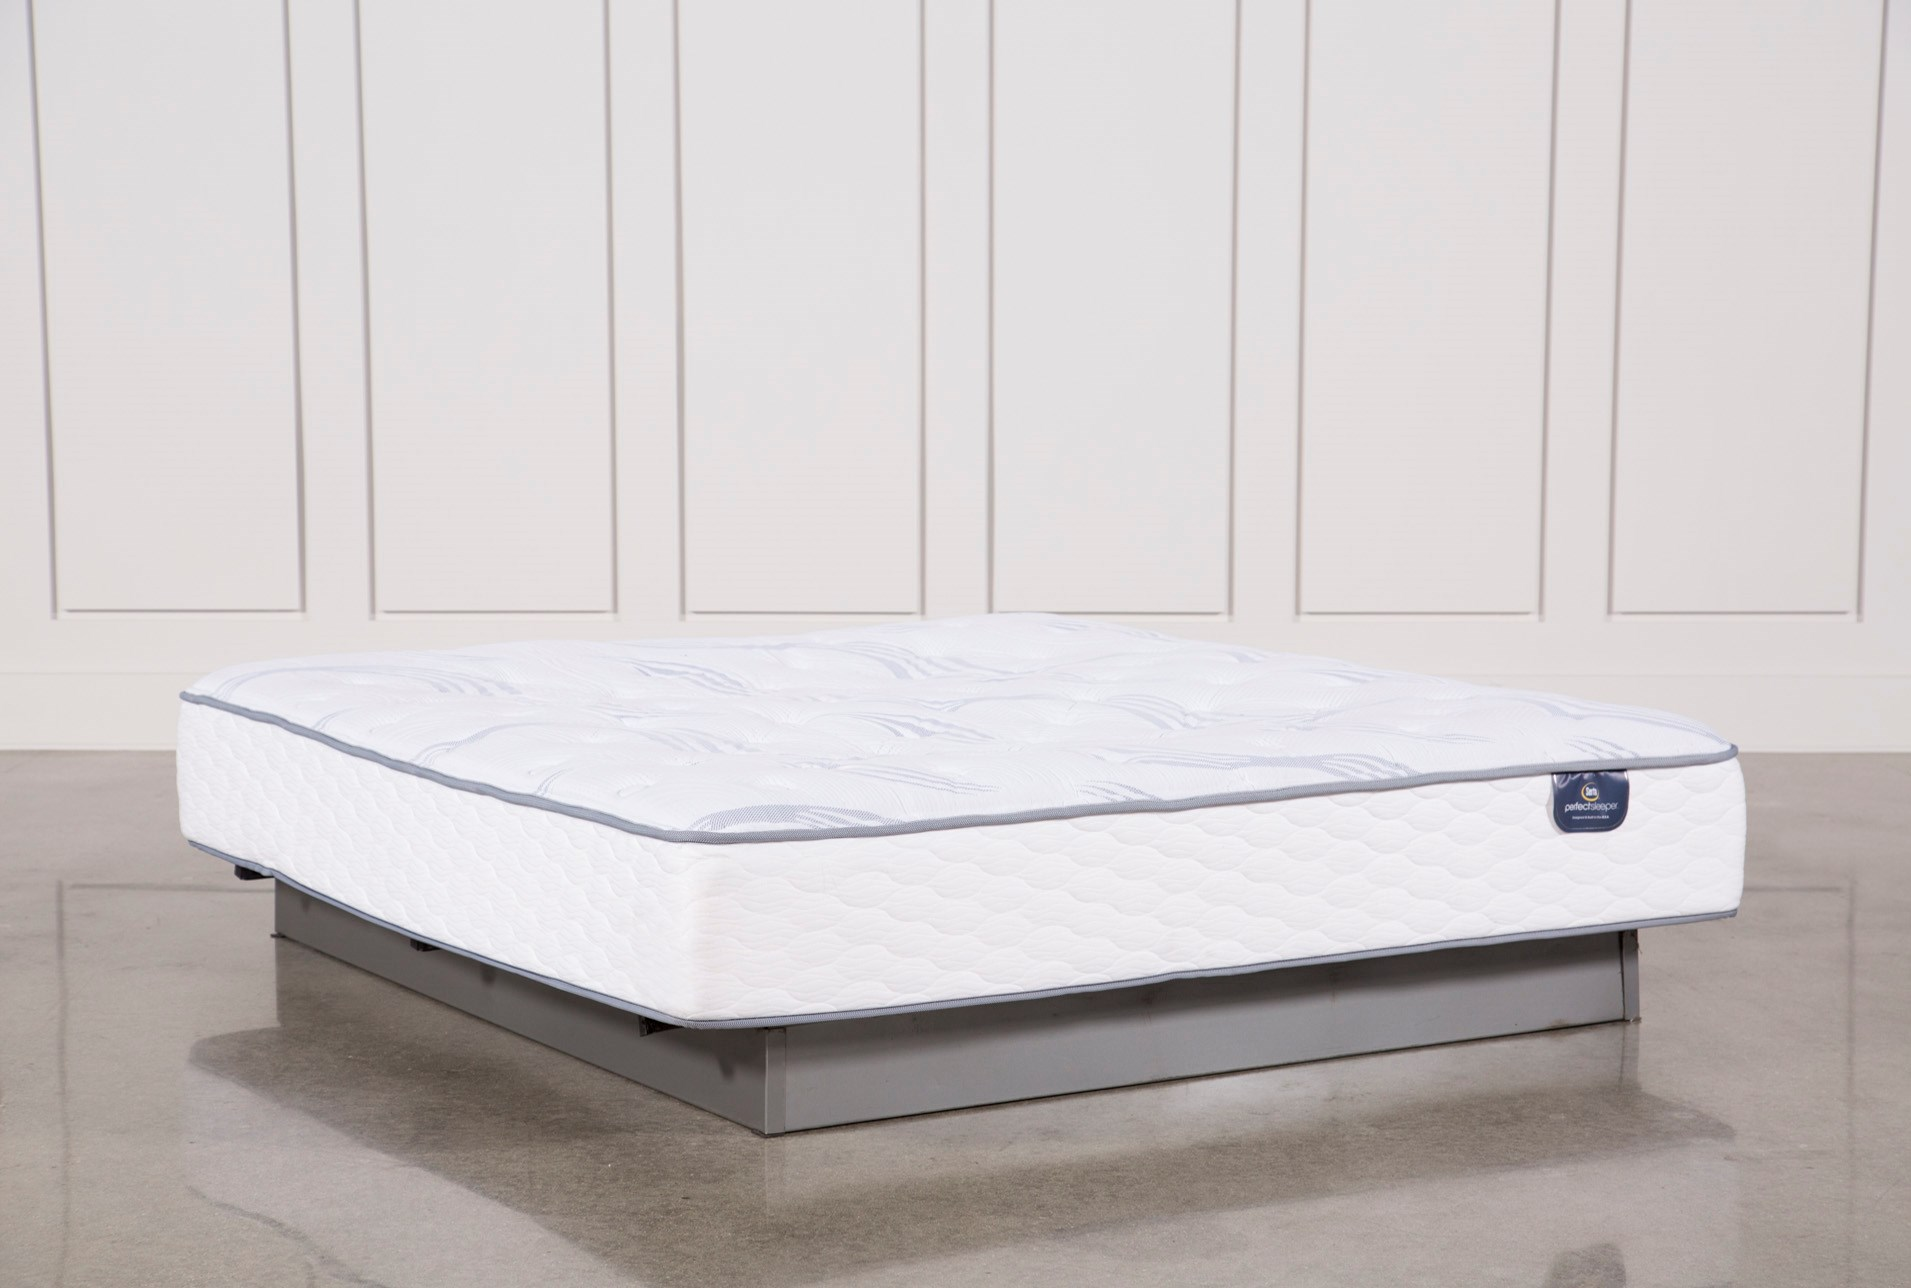 bed eastern vaughn king beds product e mattress bedroom outlet complete